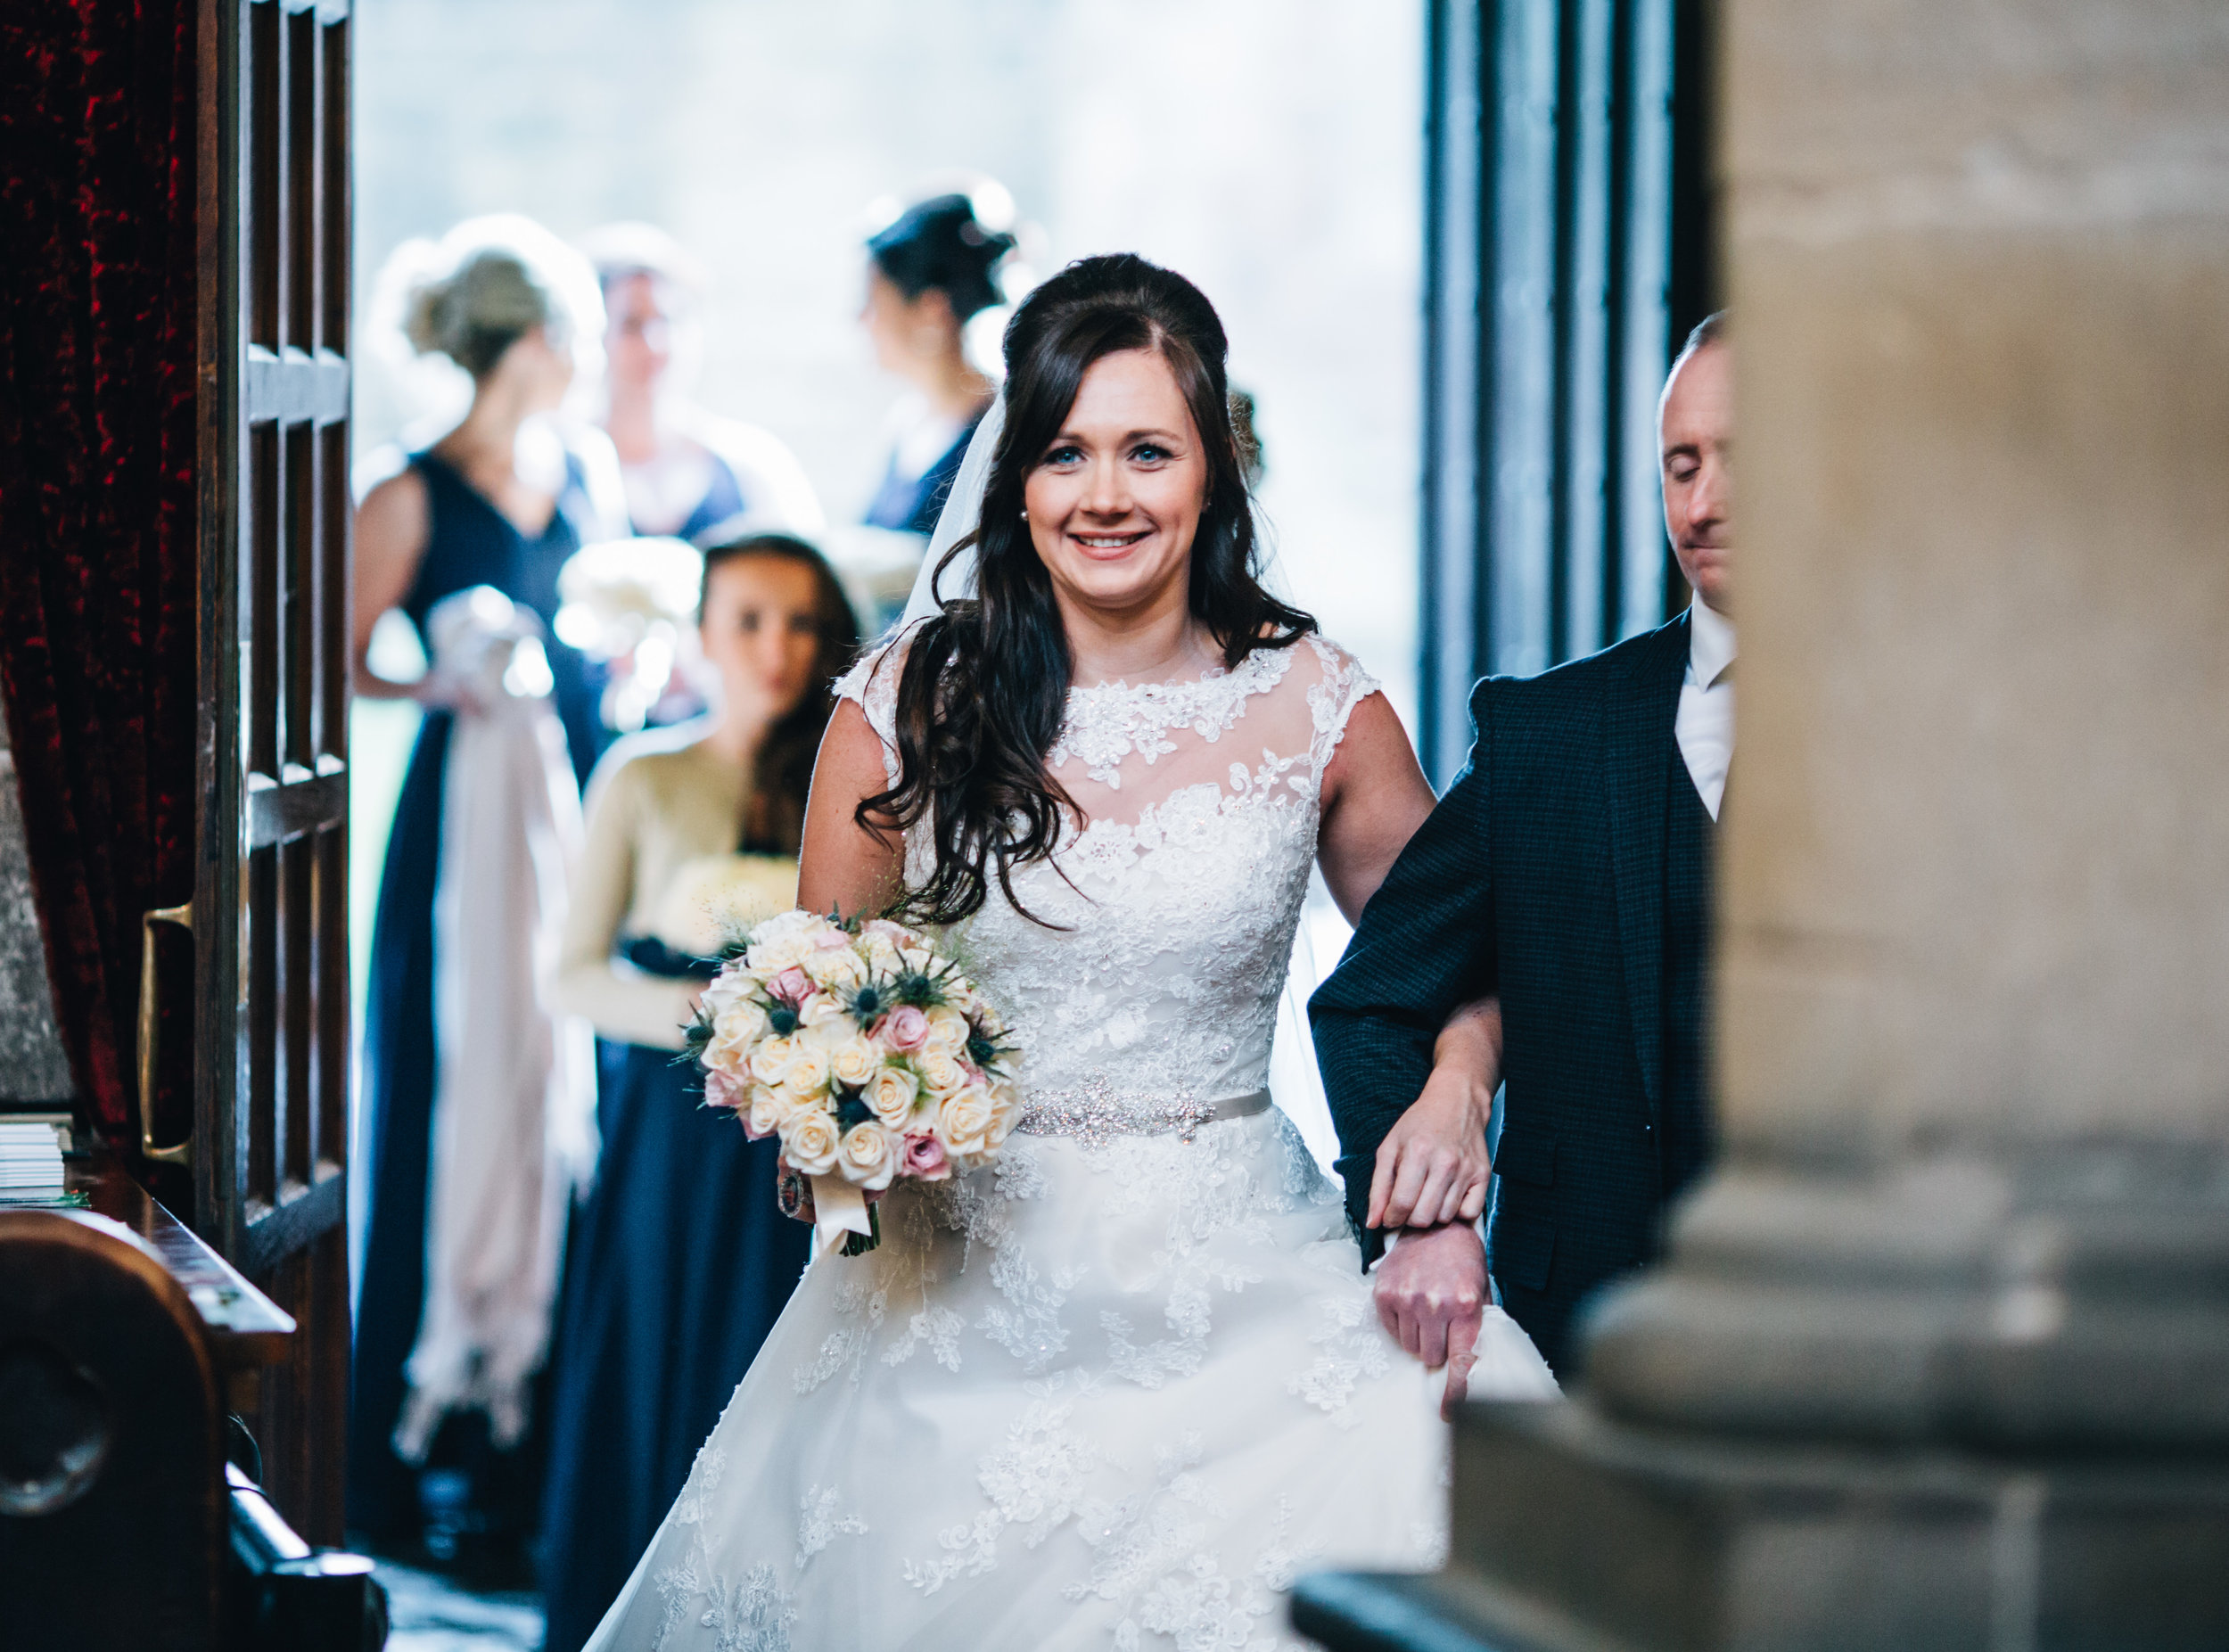 bride arrives at church - wedding photography Lancashire